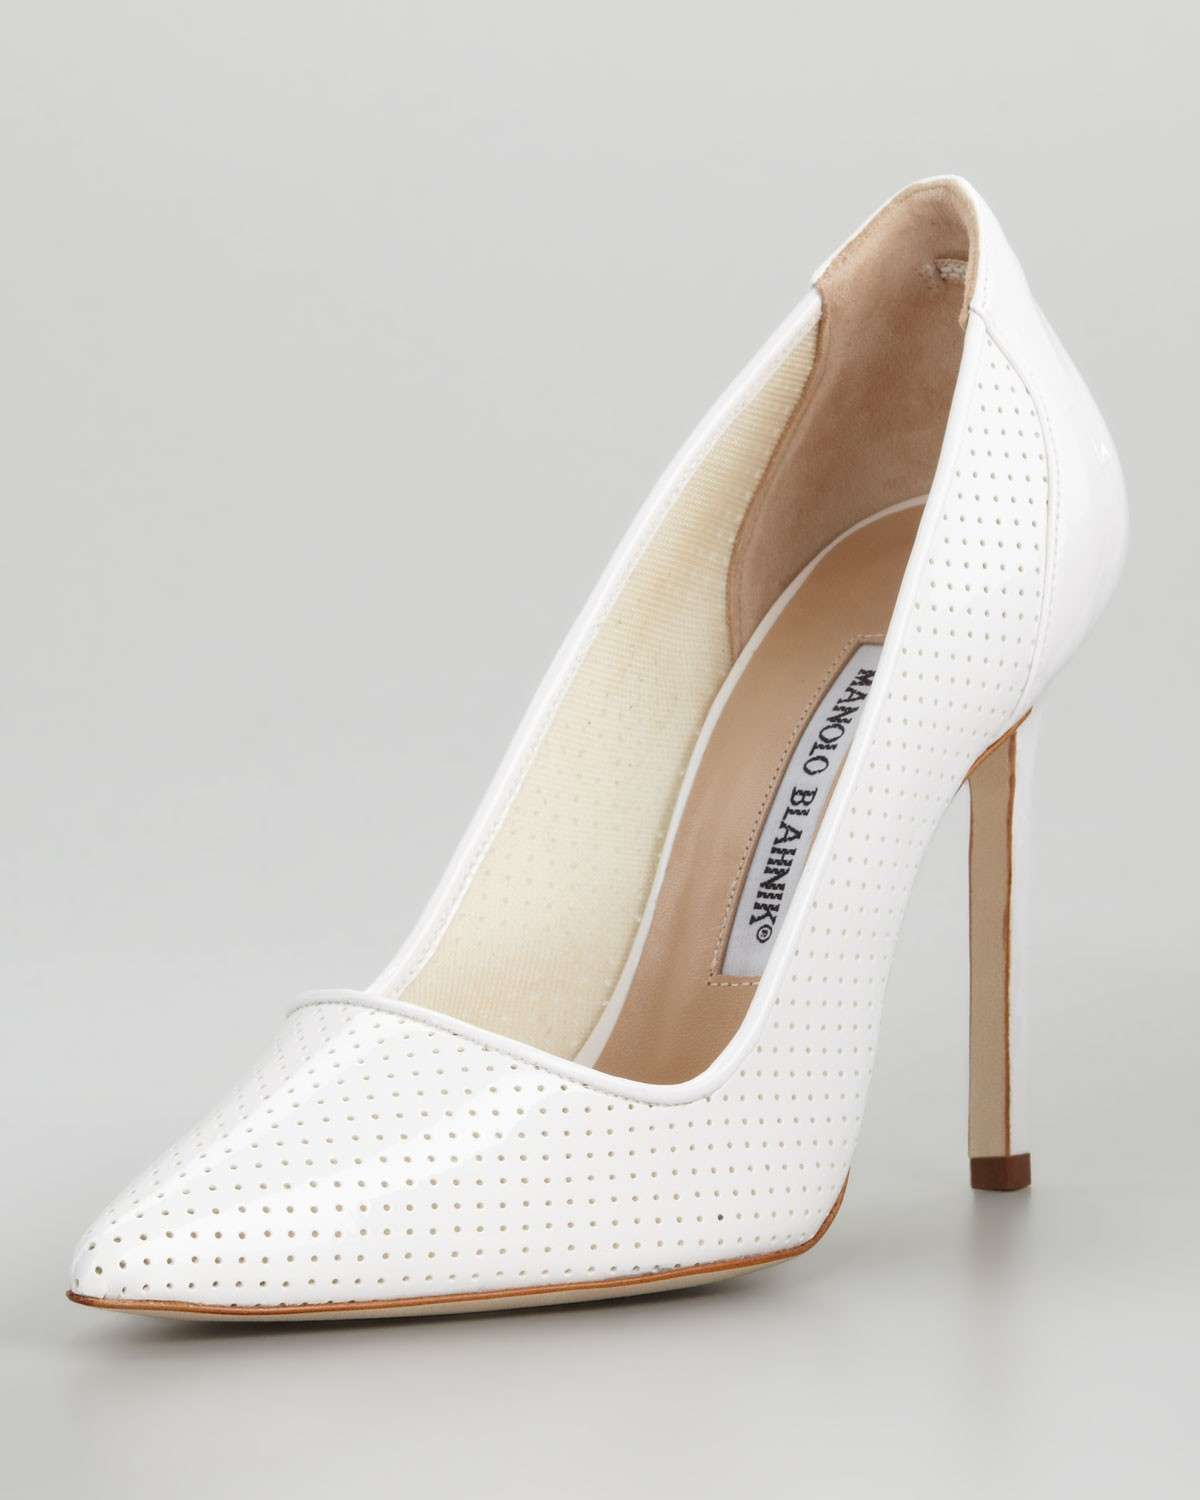 BB Manolo Blahnik